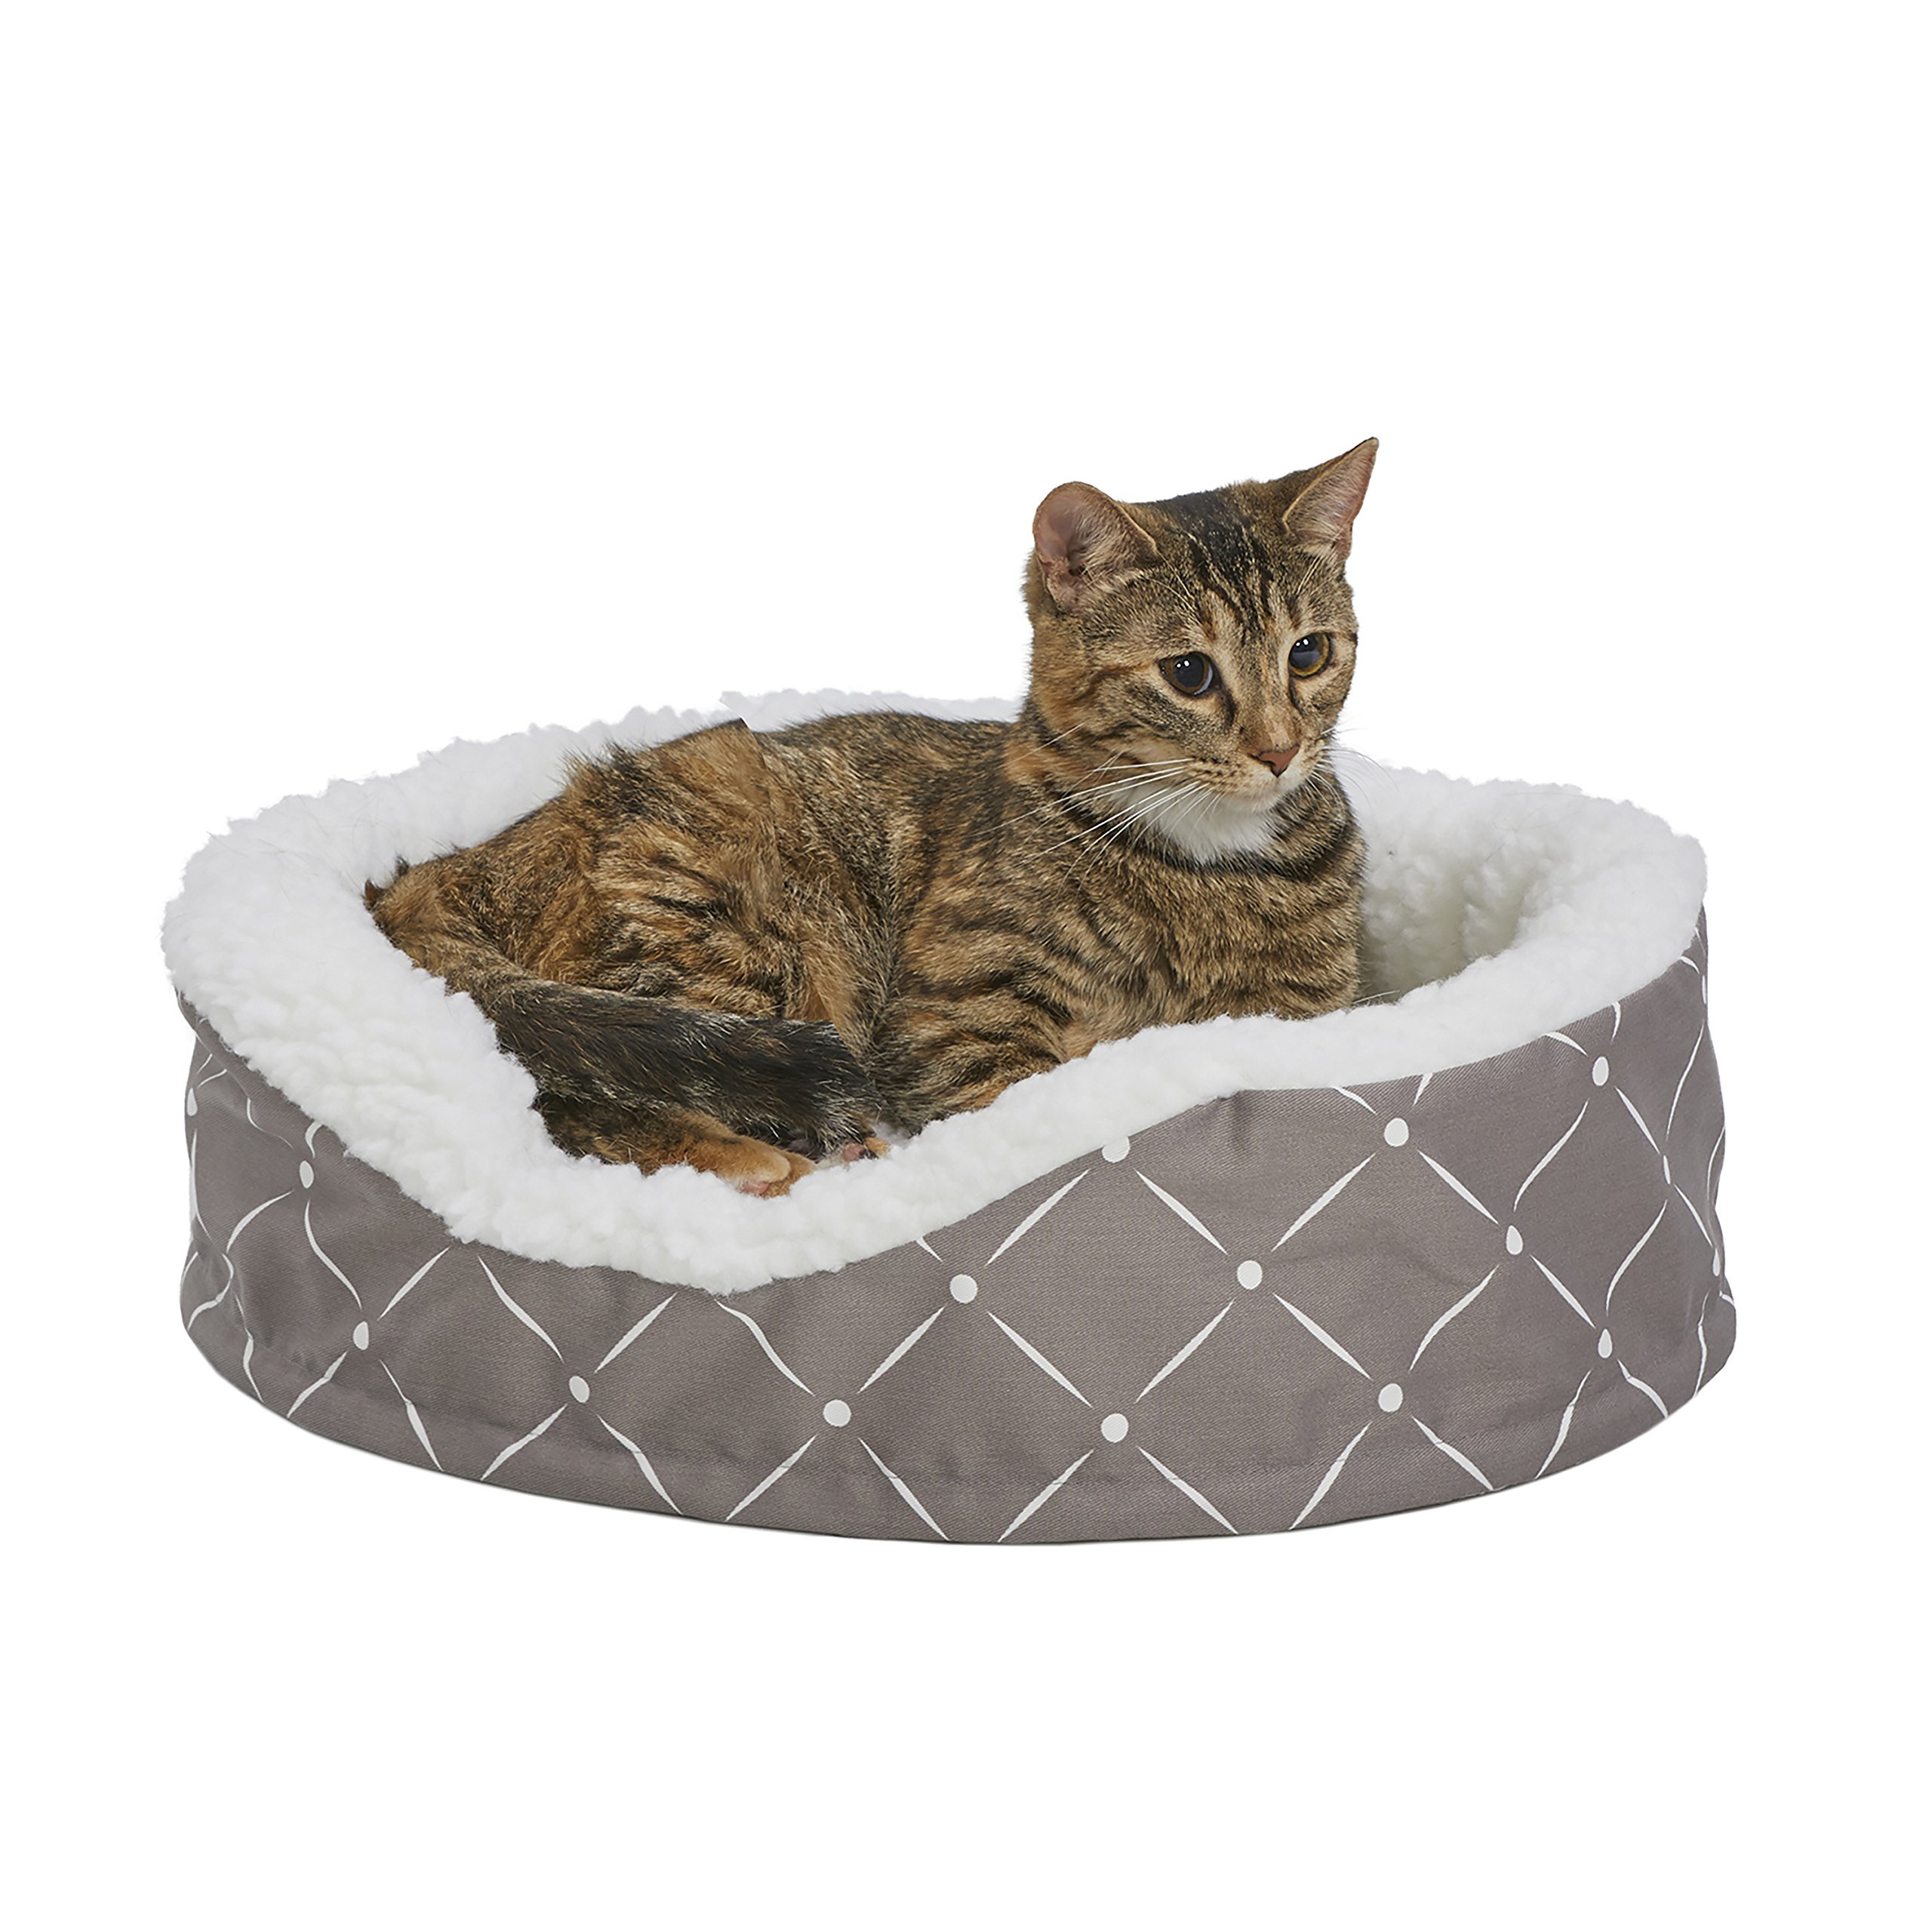 MidWest Homes for Pets CU20MRD Couture Orthopedic Cradle Pet Bed for Dogs & Cats, X-Small